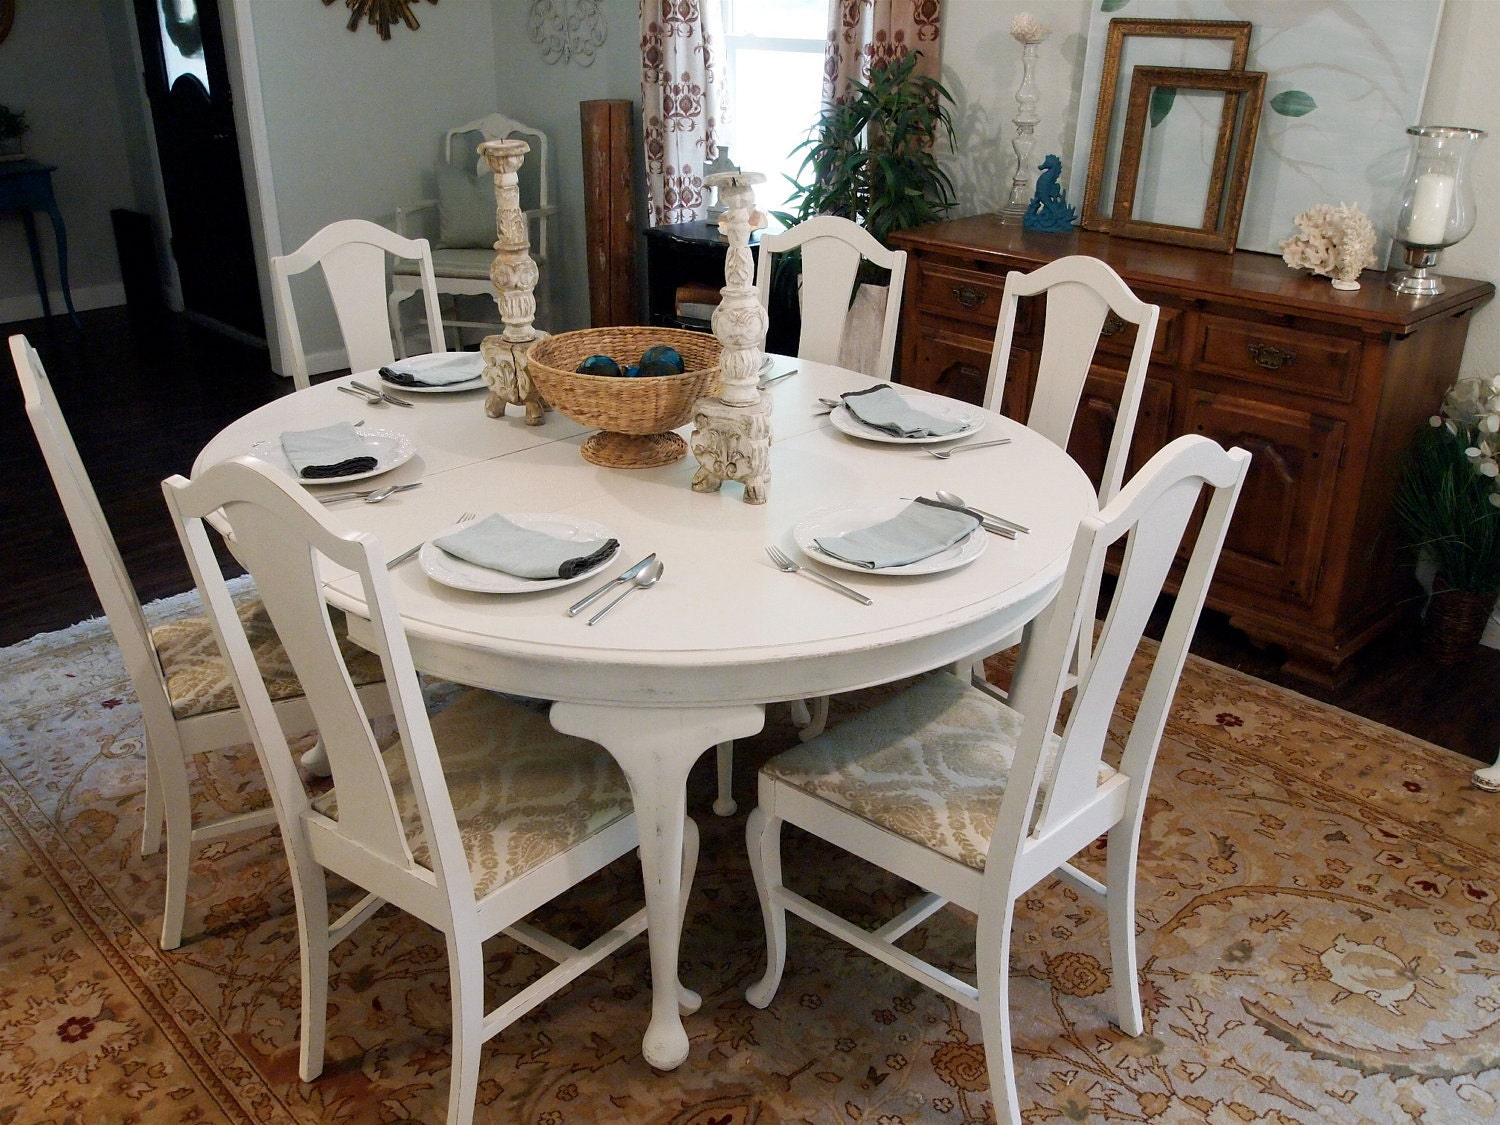 White Round Distressed Dining Table With 6 Queen Anne Chairs